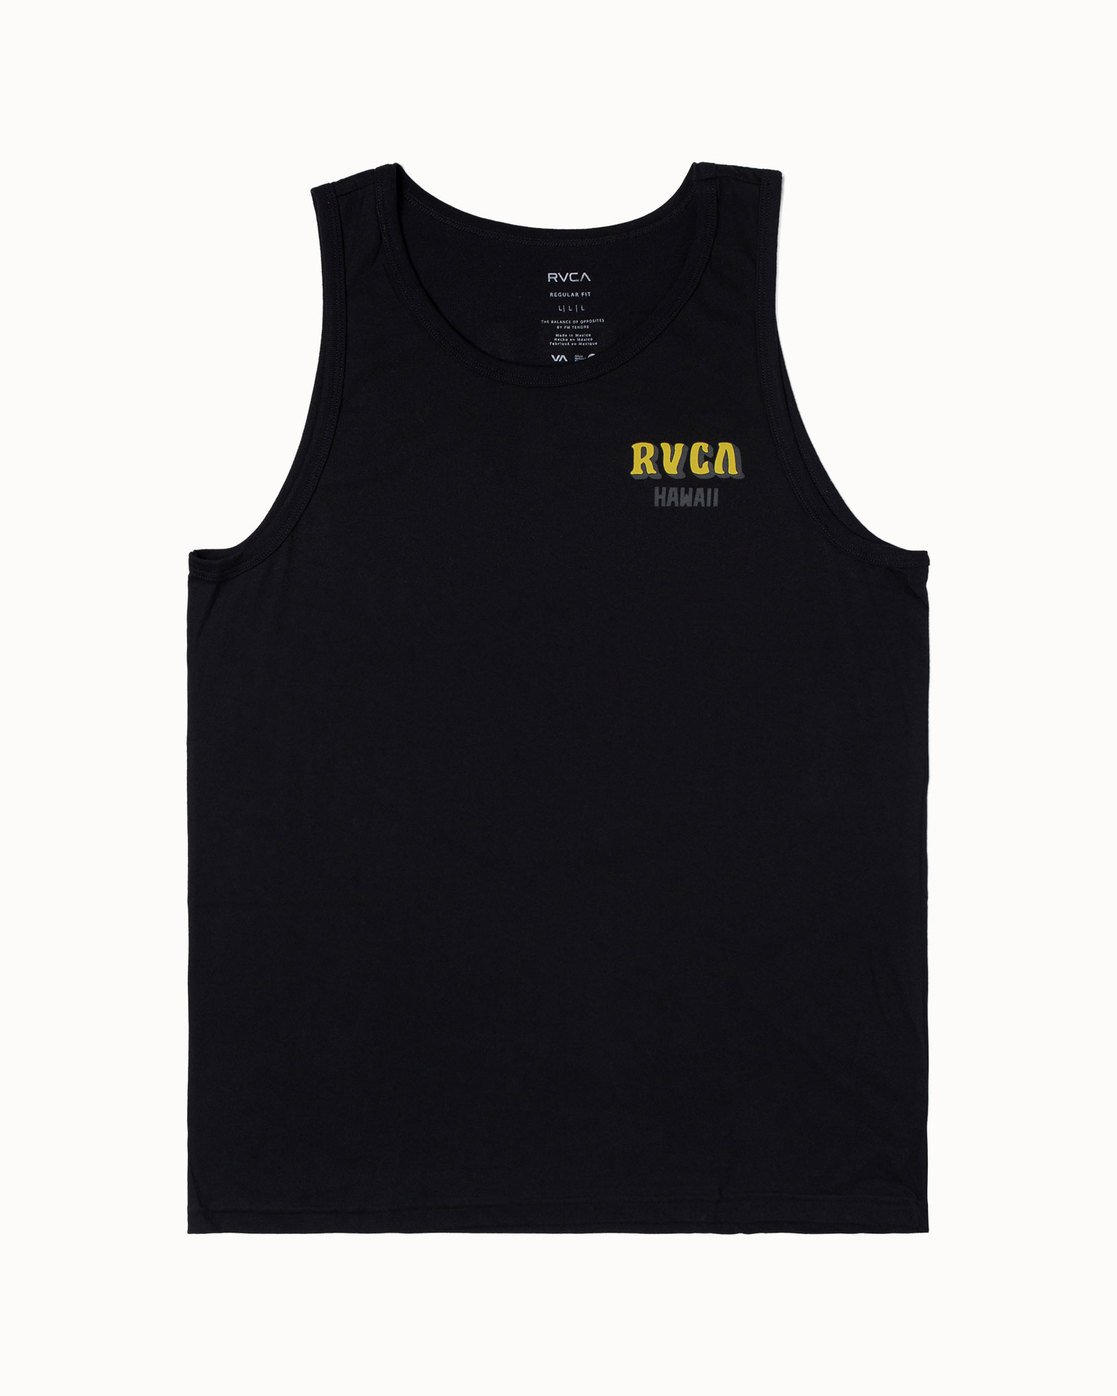 0 KEEP OUT TANK Black M4813RKO RVCA